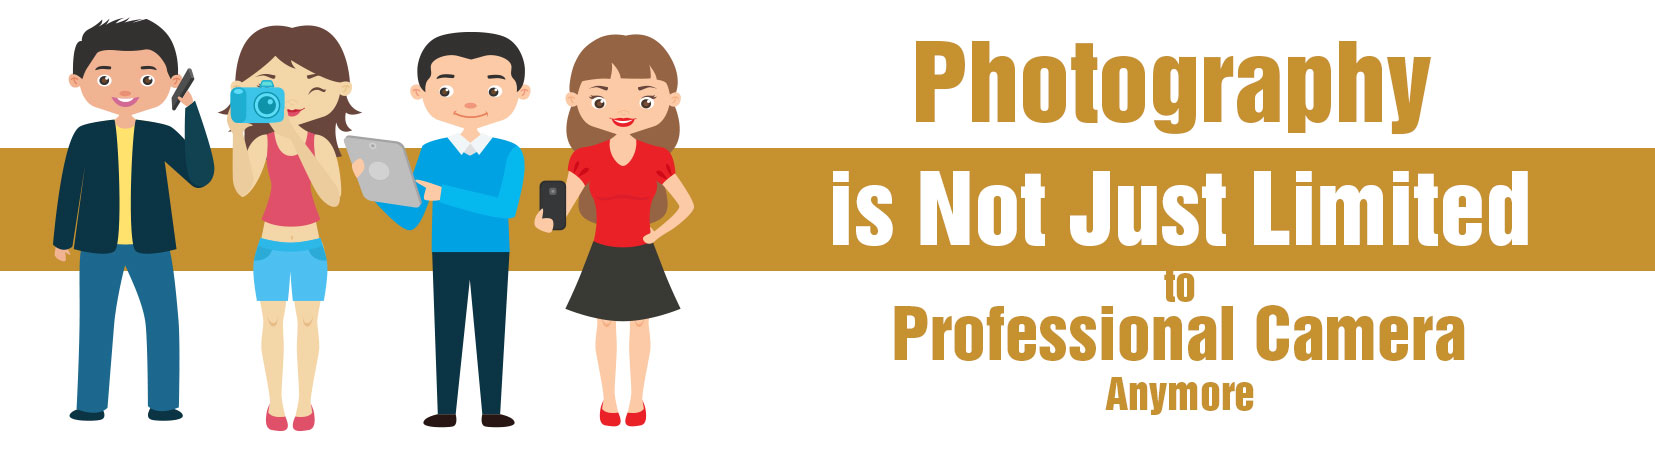 Professional Photography Image